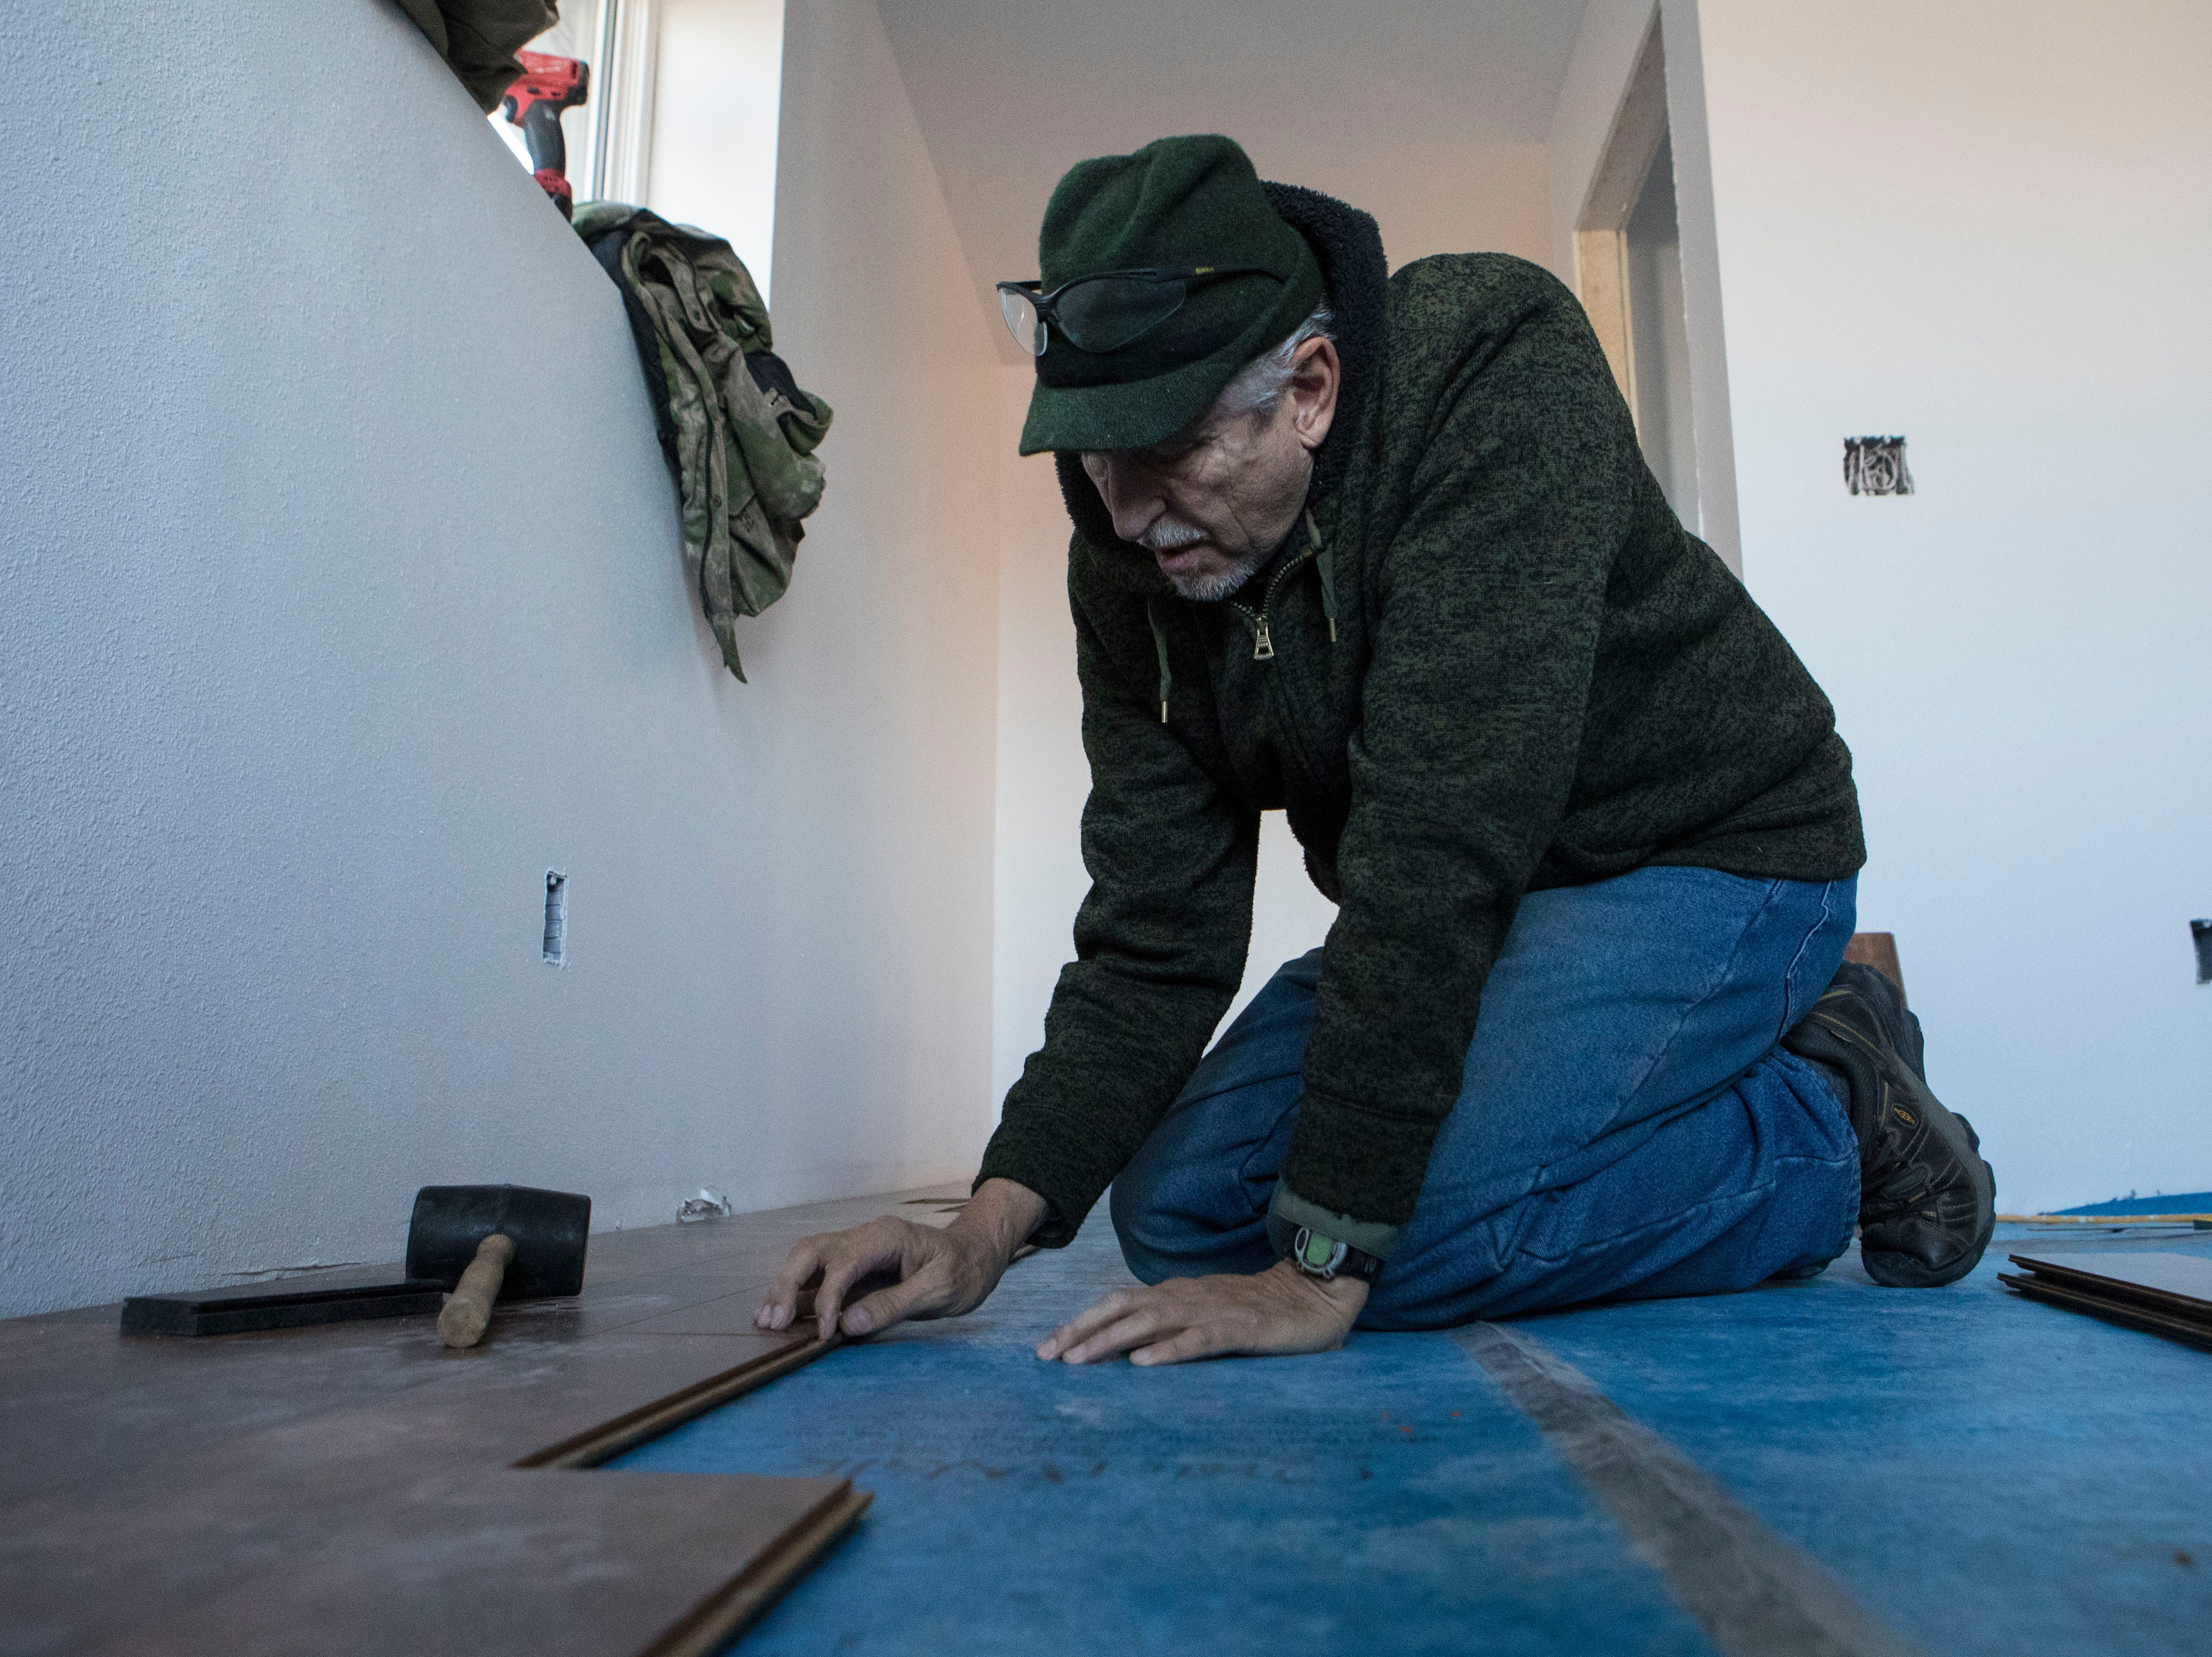 Jack Mallek, volunteer for Habitat for Humanity, works on the flooring in a house in Sioux Falls, S.D., Thursday, Nov. 15, 2018.